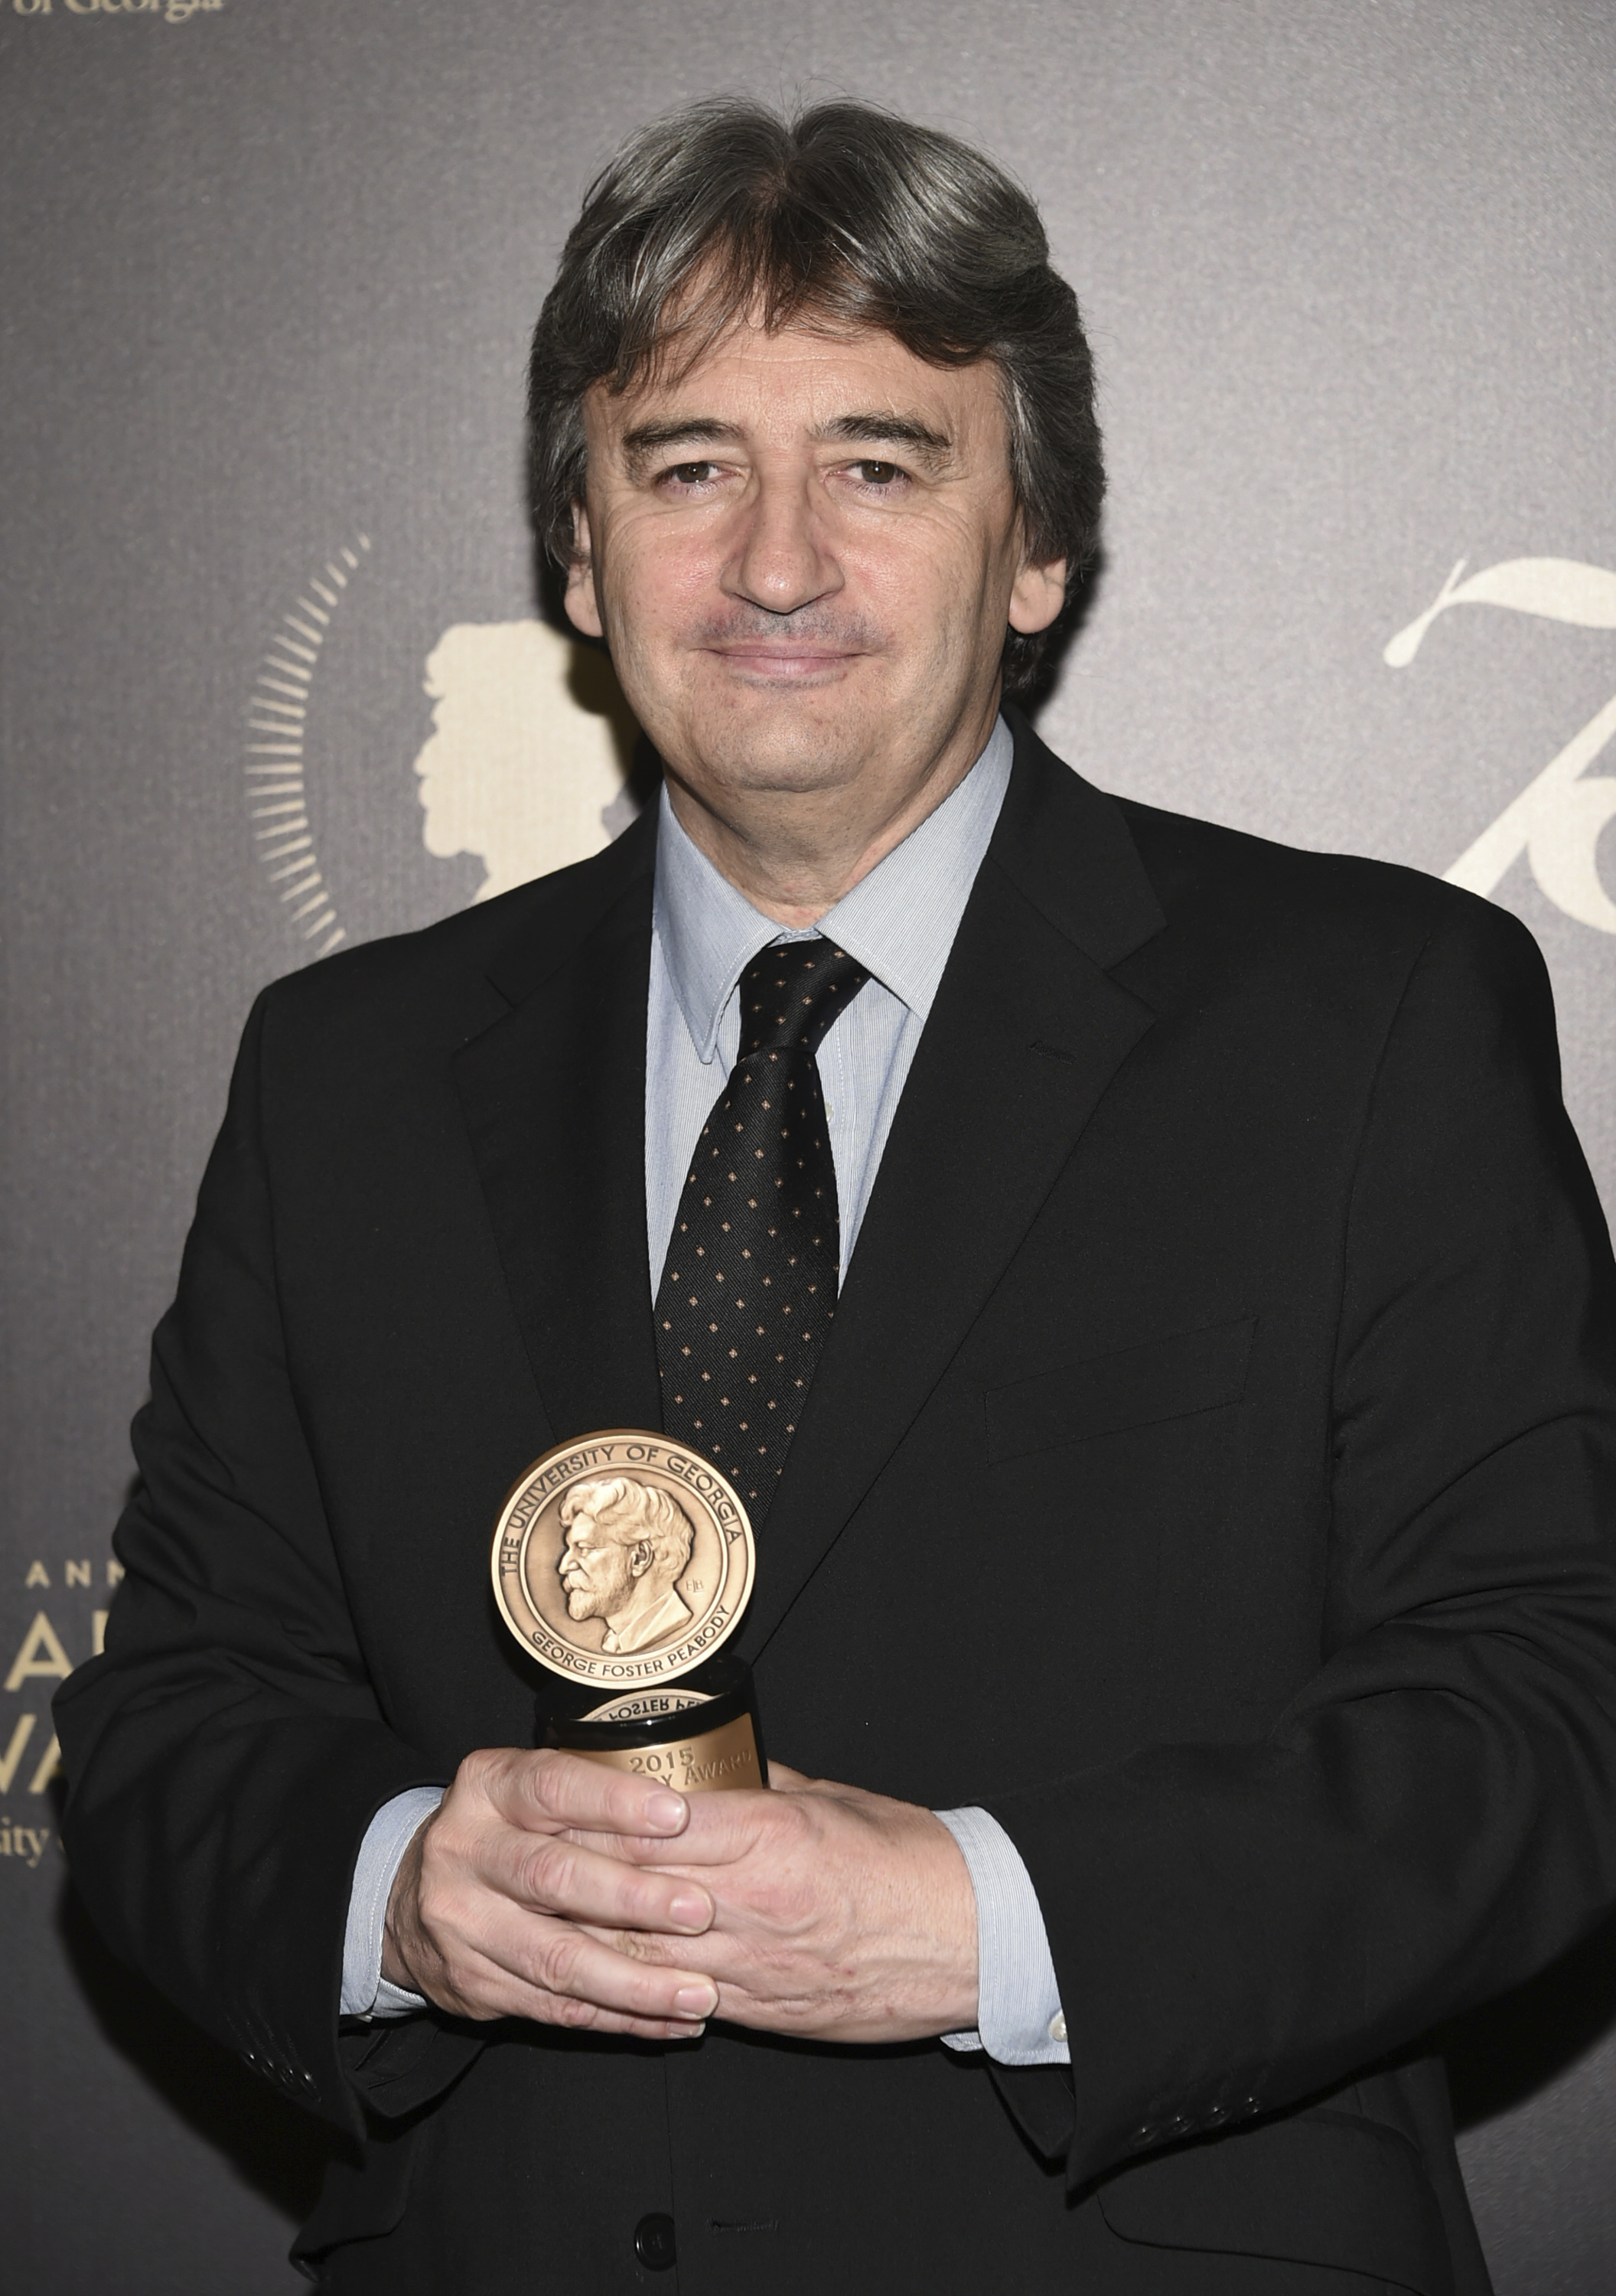 The BBC's Fergal Keane poses with his award at the 75th Annual Peabody Awards Ceremony at Cipriani Wall Street on Saturday, May 21, 2016, in New York. (Photo by Evan Agostini/Invision/AP)